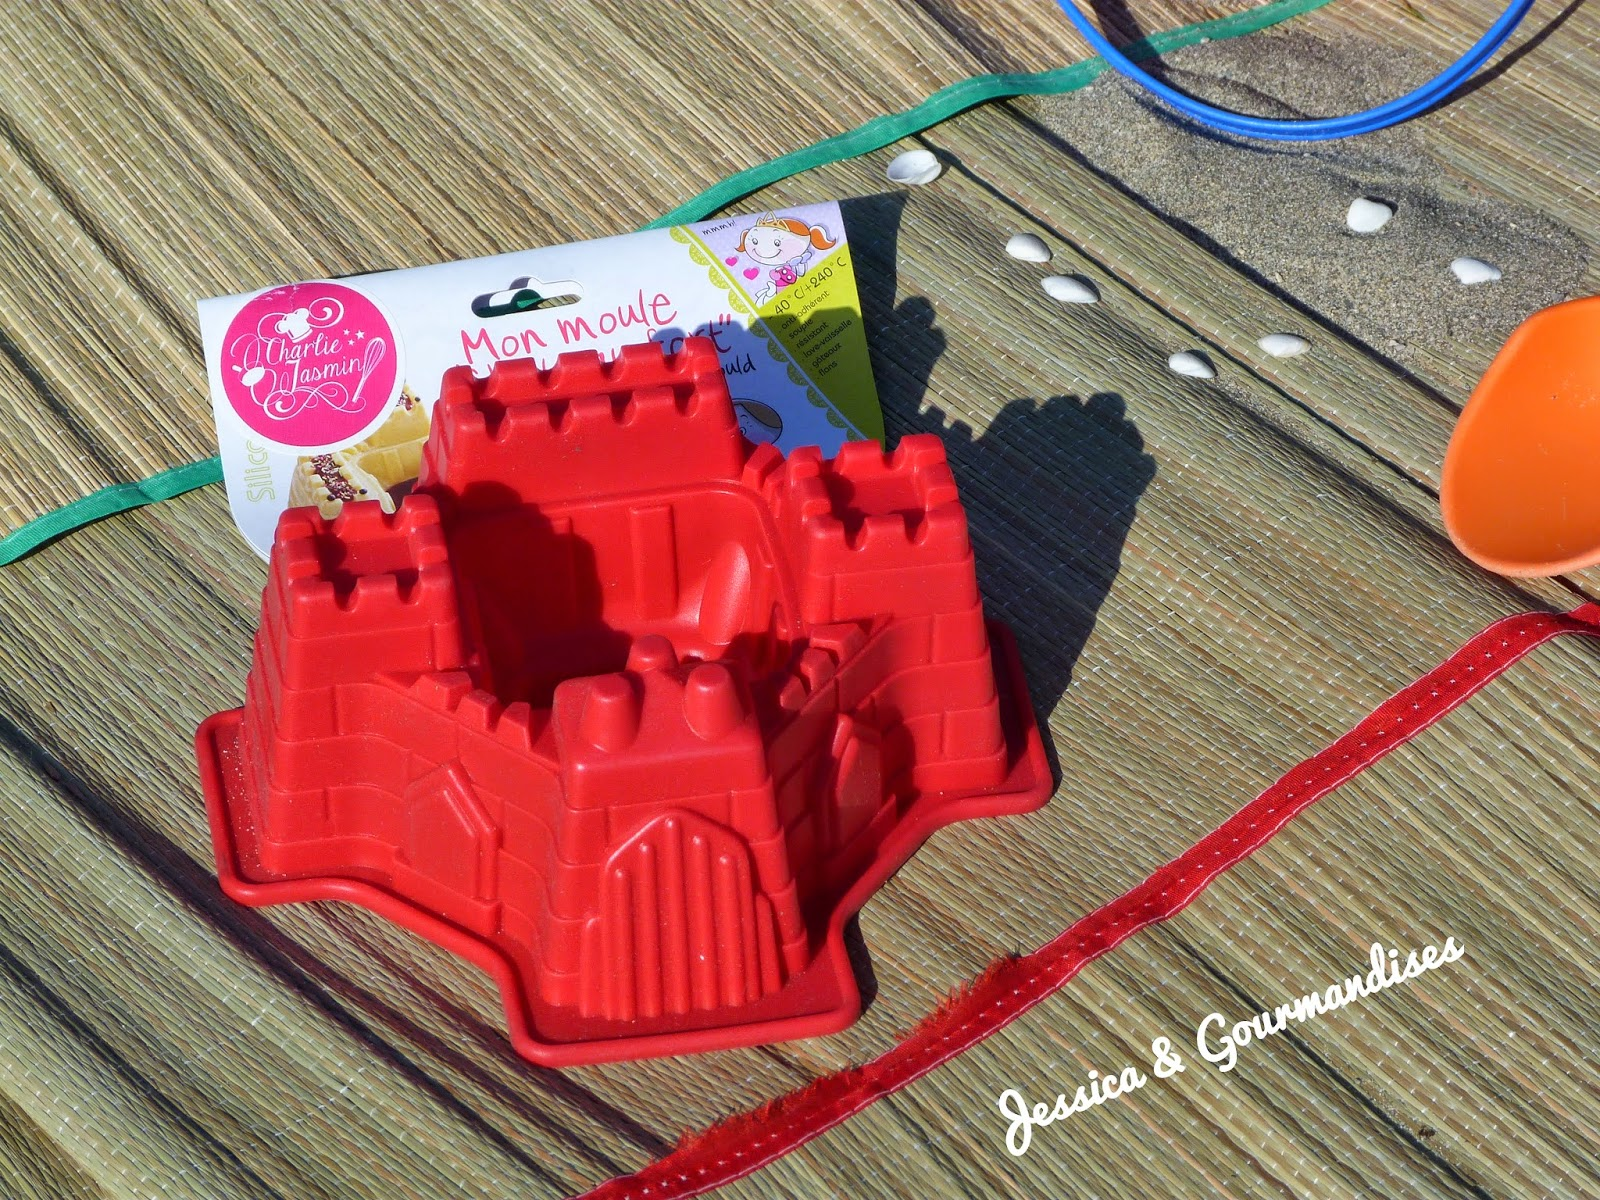 recette gateau chocolat moule silicone chateau fort home baking for you blog photo